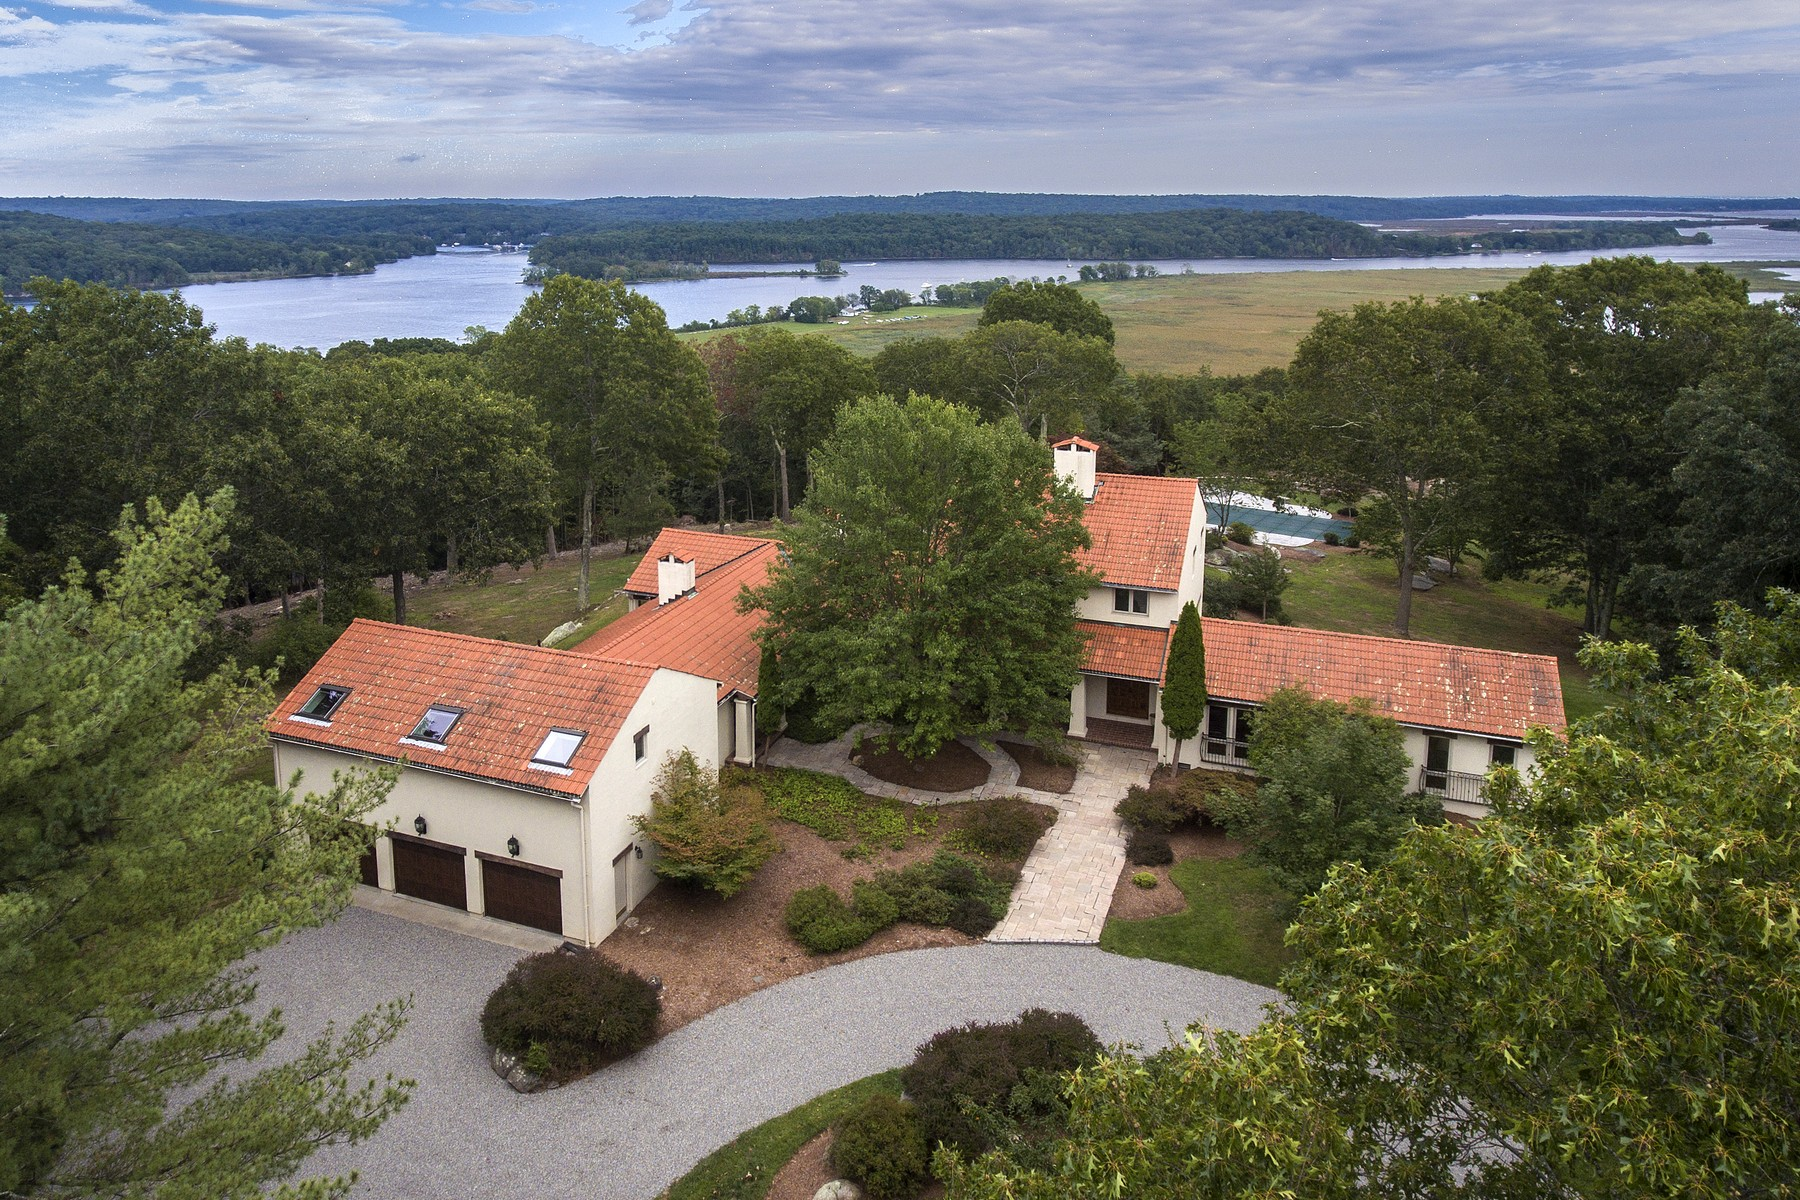 Moradia para Venda às Extraordinary European Designed Home on 10+ Acres 120 River Rd Essex, Connecticut, 06426 Estados Unidos